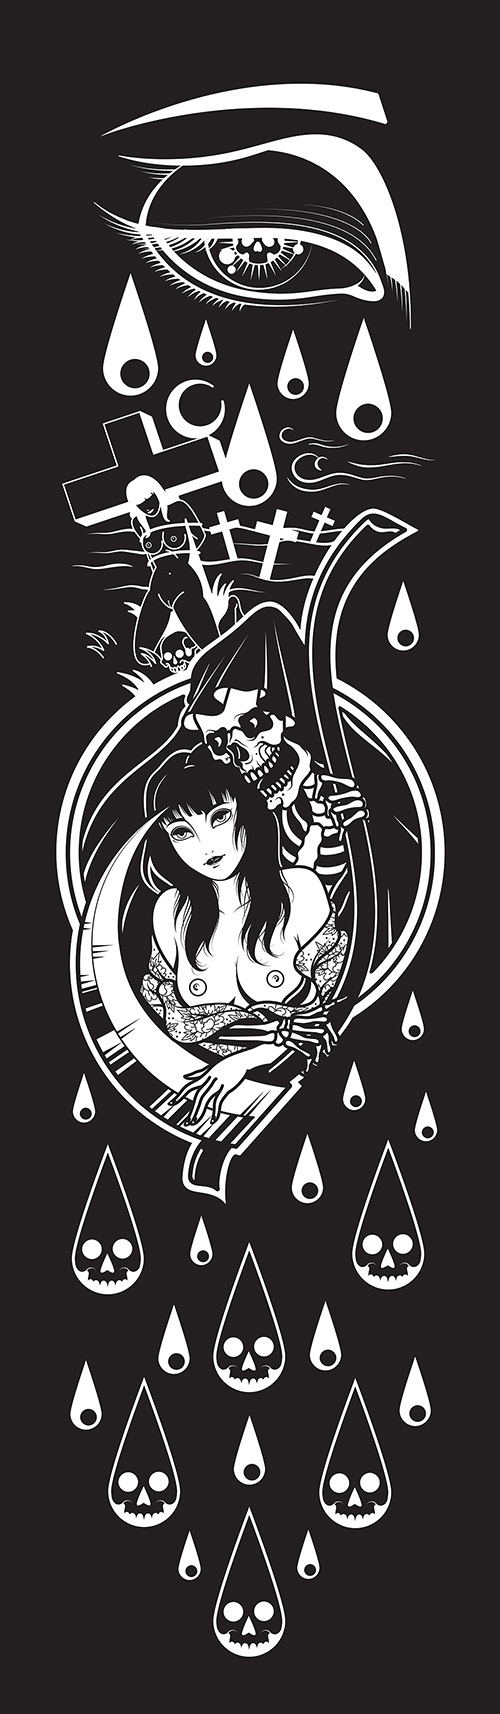 """Death and the Maiden"" by Hiten Damodar"